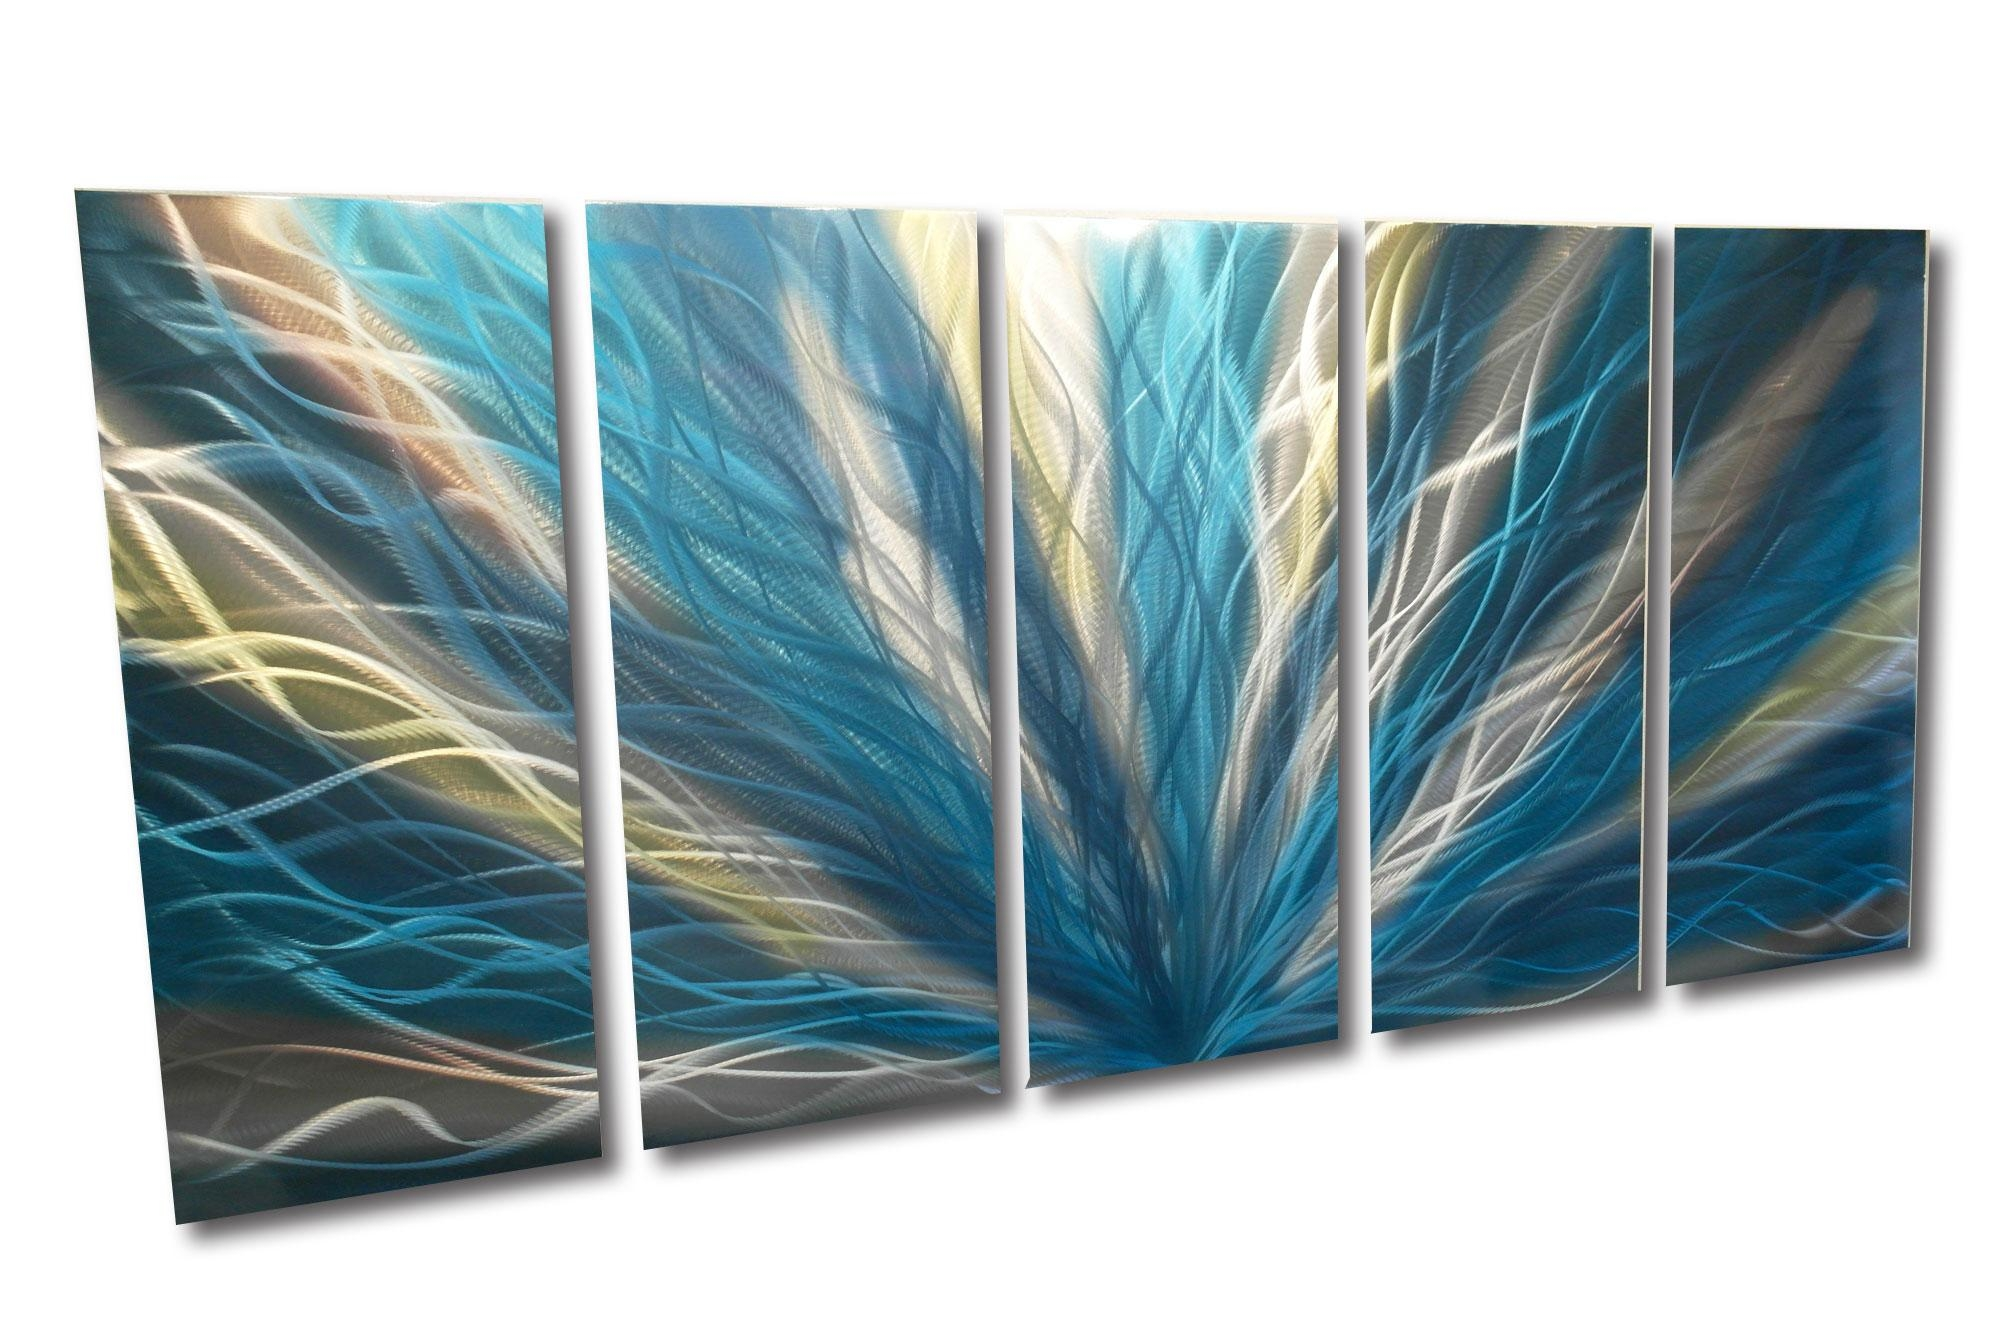 Radiance Teal 36X79 – Metal Wall Art Abstract Sculpture Modern Pertaining To Turquoise And Brown Wall Art (Image 14 of 20)